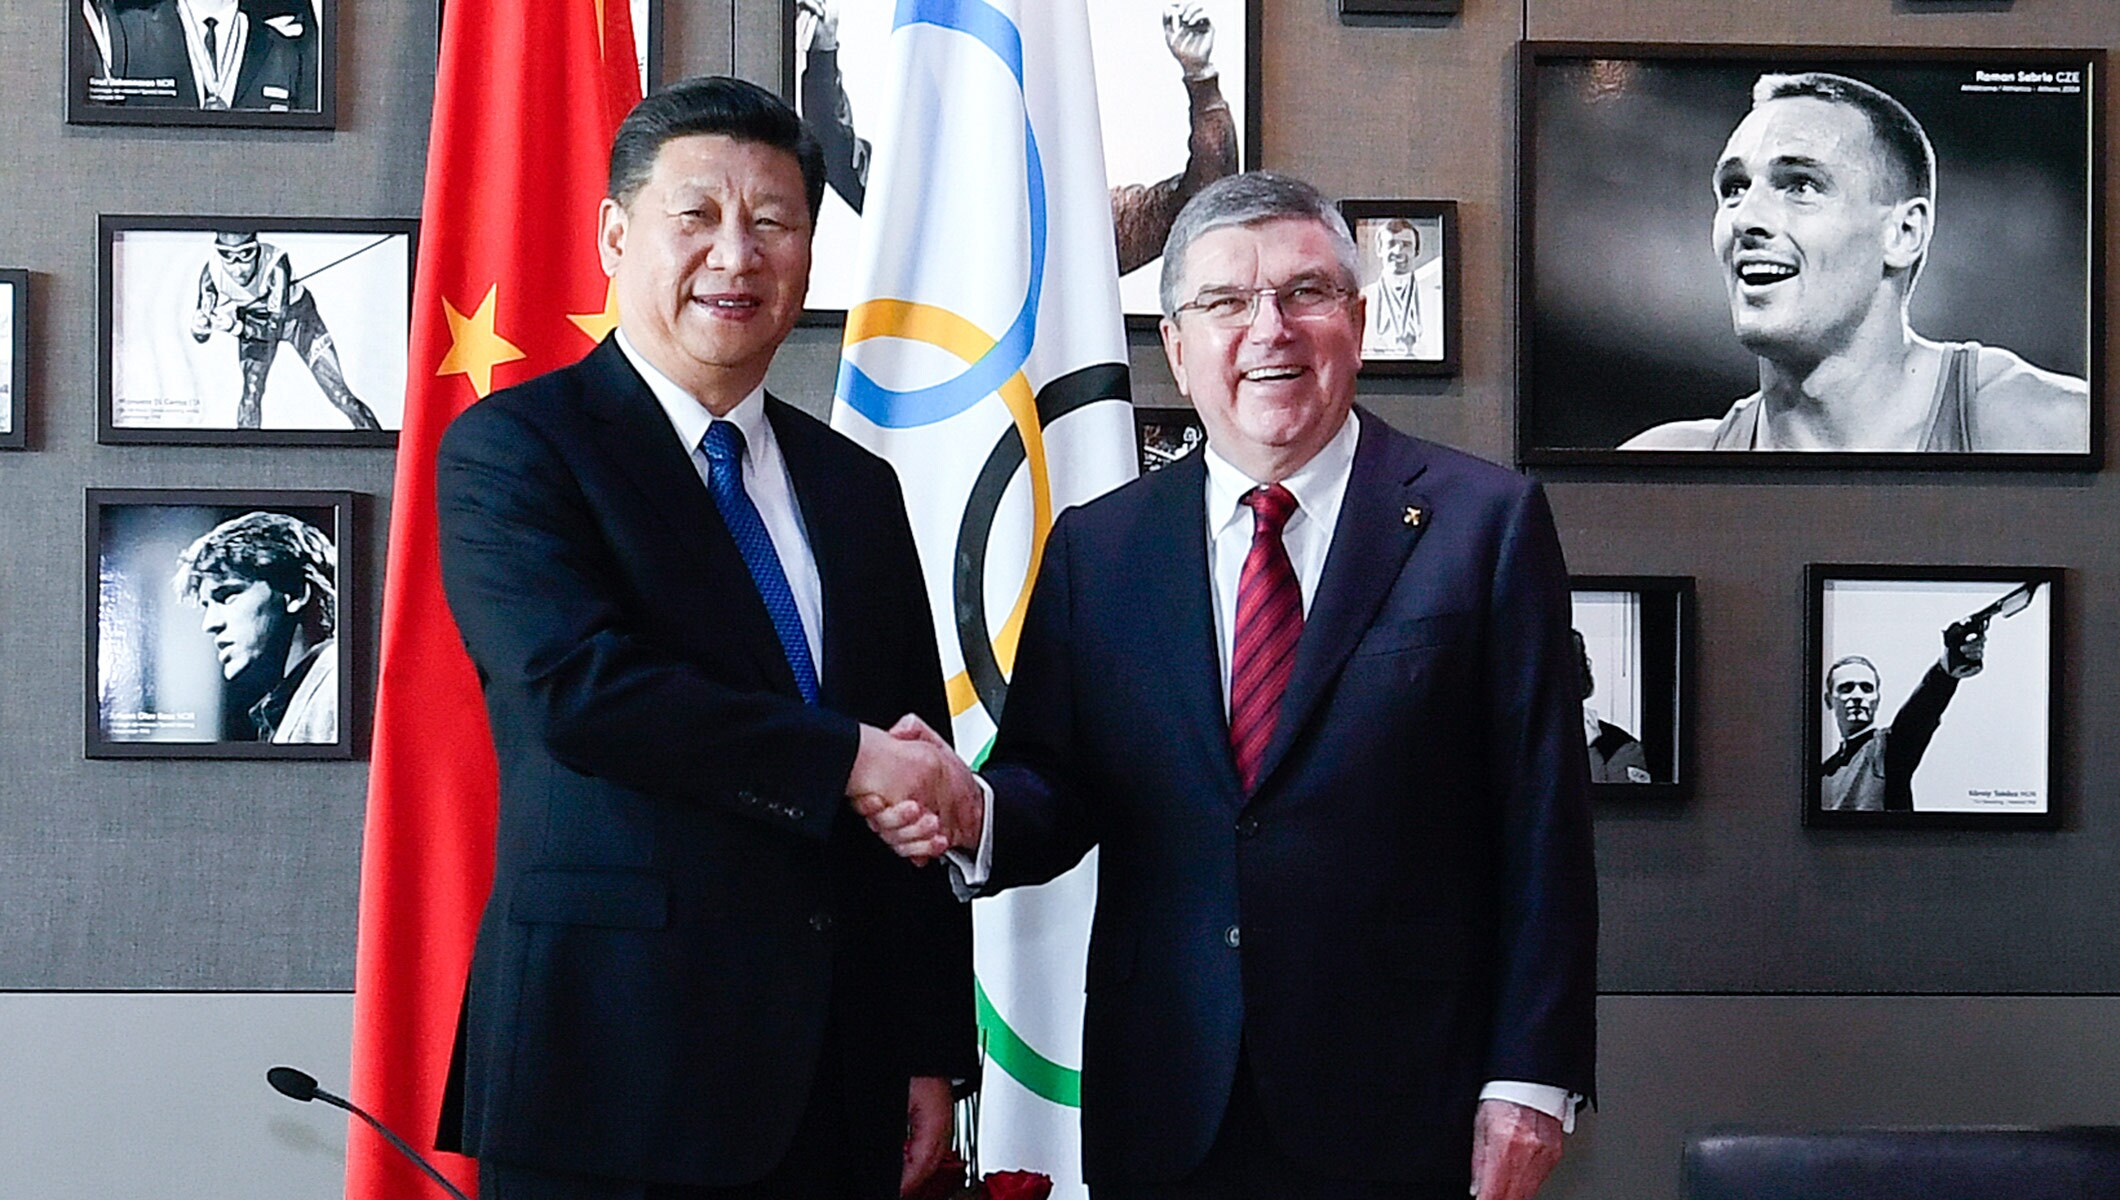 Chinese President Xi and IOC President Bach visit the Olympic Museum.